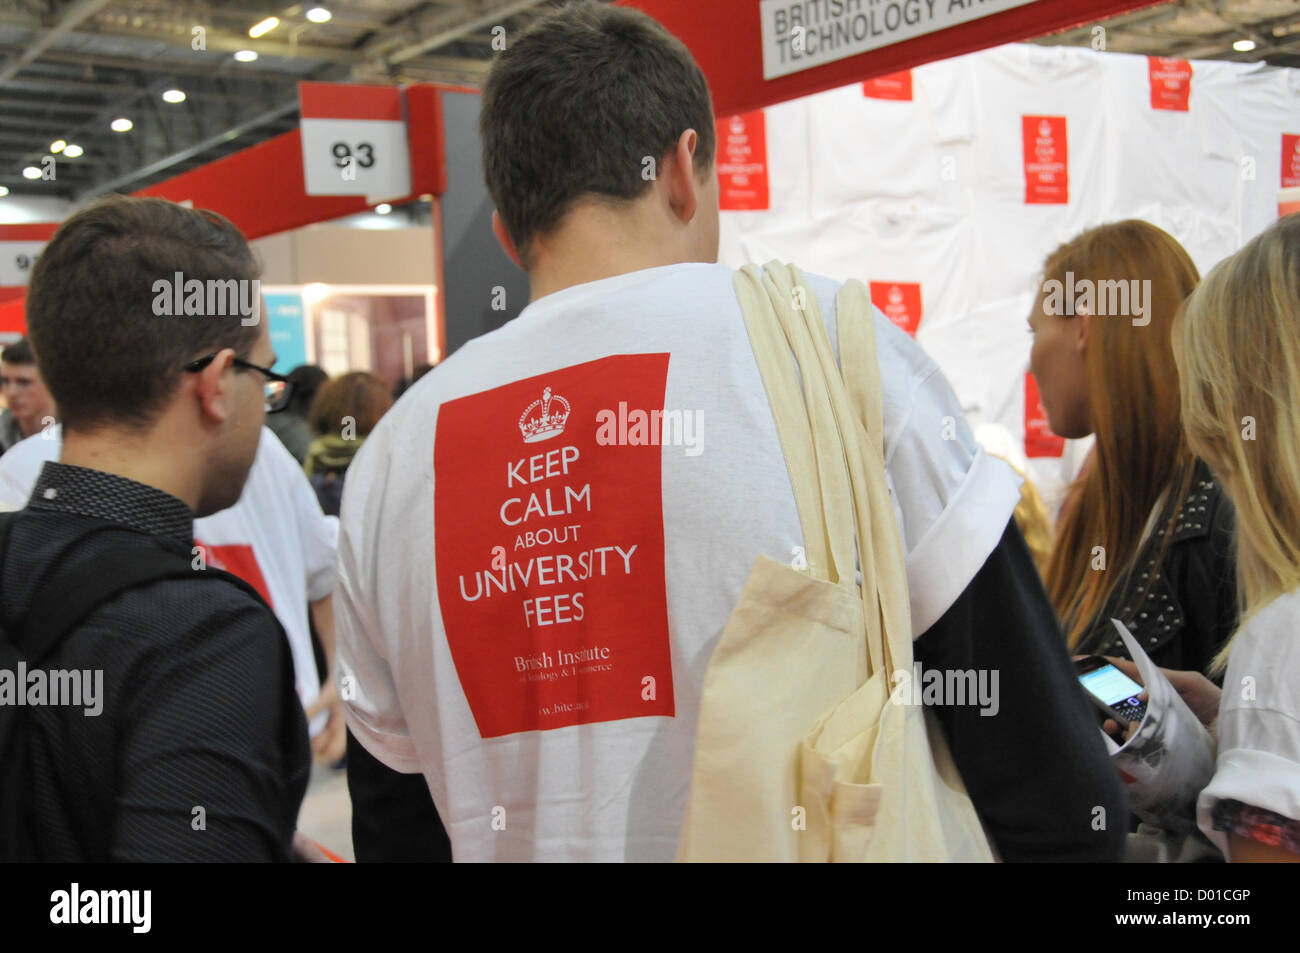 Excel, London, UK. 14th November 2012. A man wears a T Shirt with the slogan 'Keep Calm about University Fees'. - Stock Image